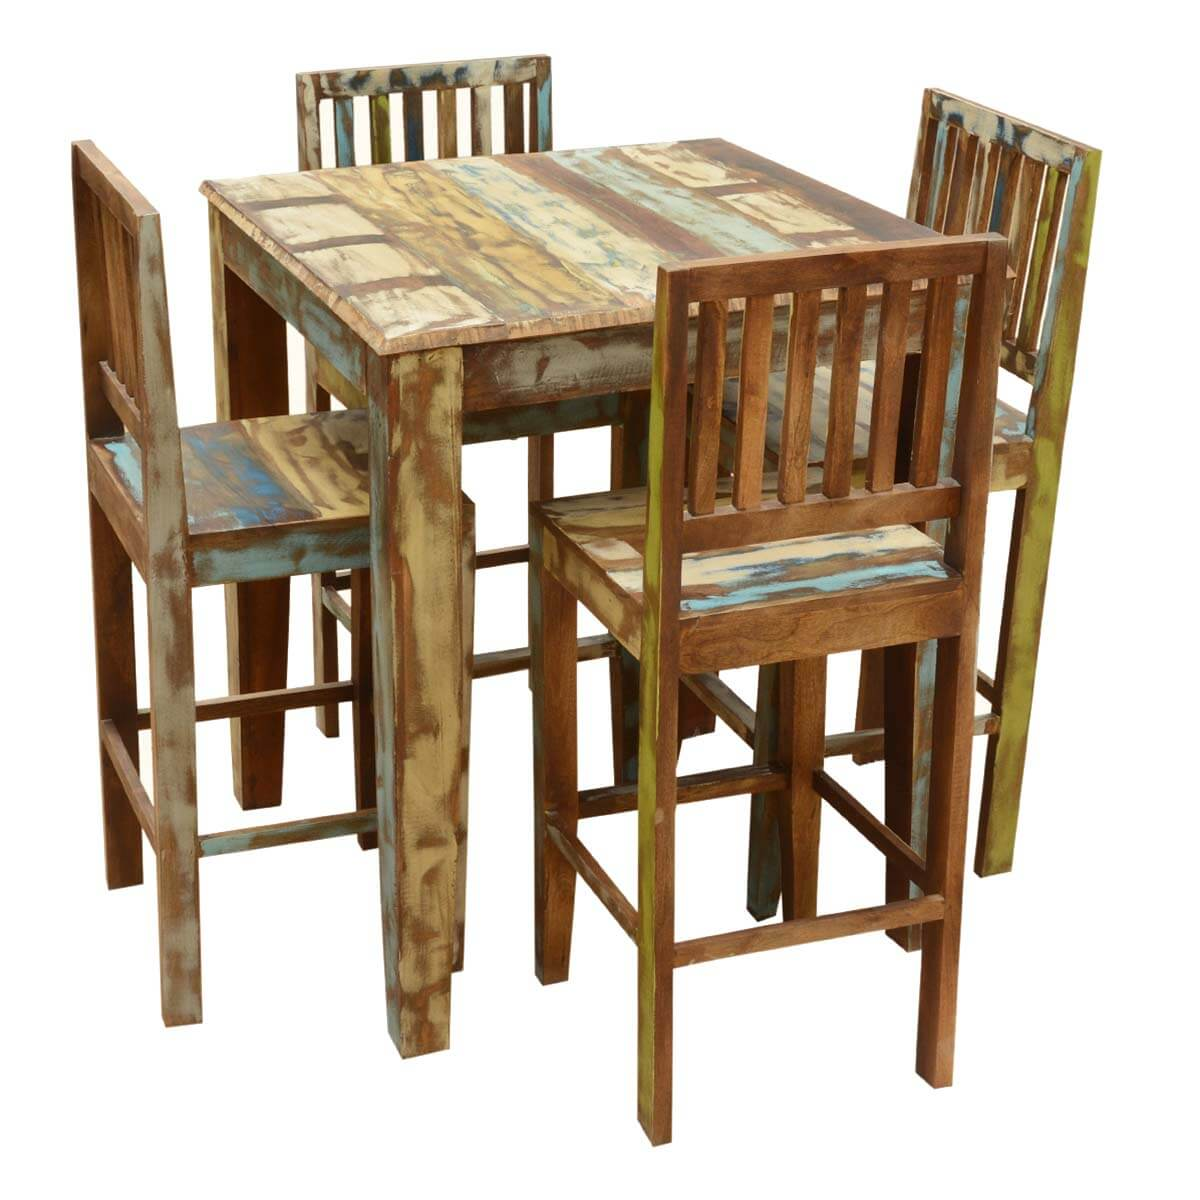 Table Top High Chair Appalachian Rustic Reclaimed Wood High Bar Table And Chair Set